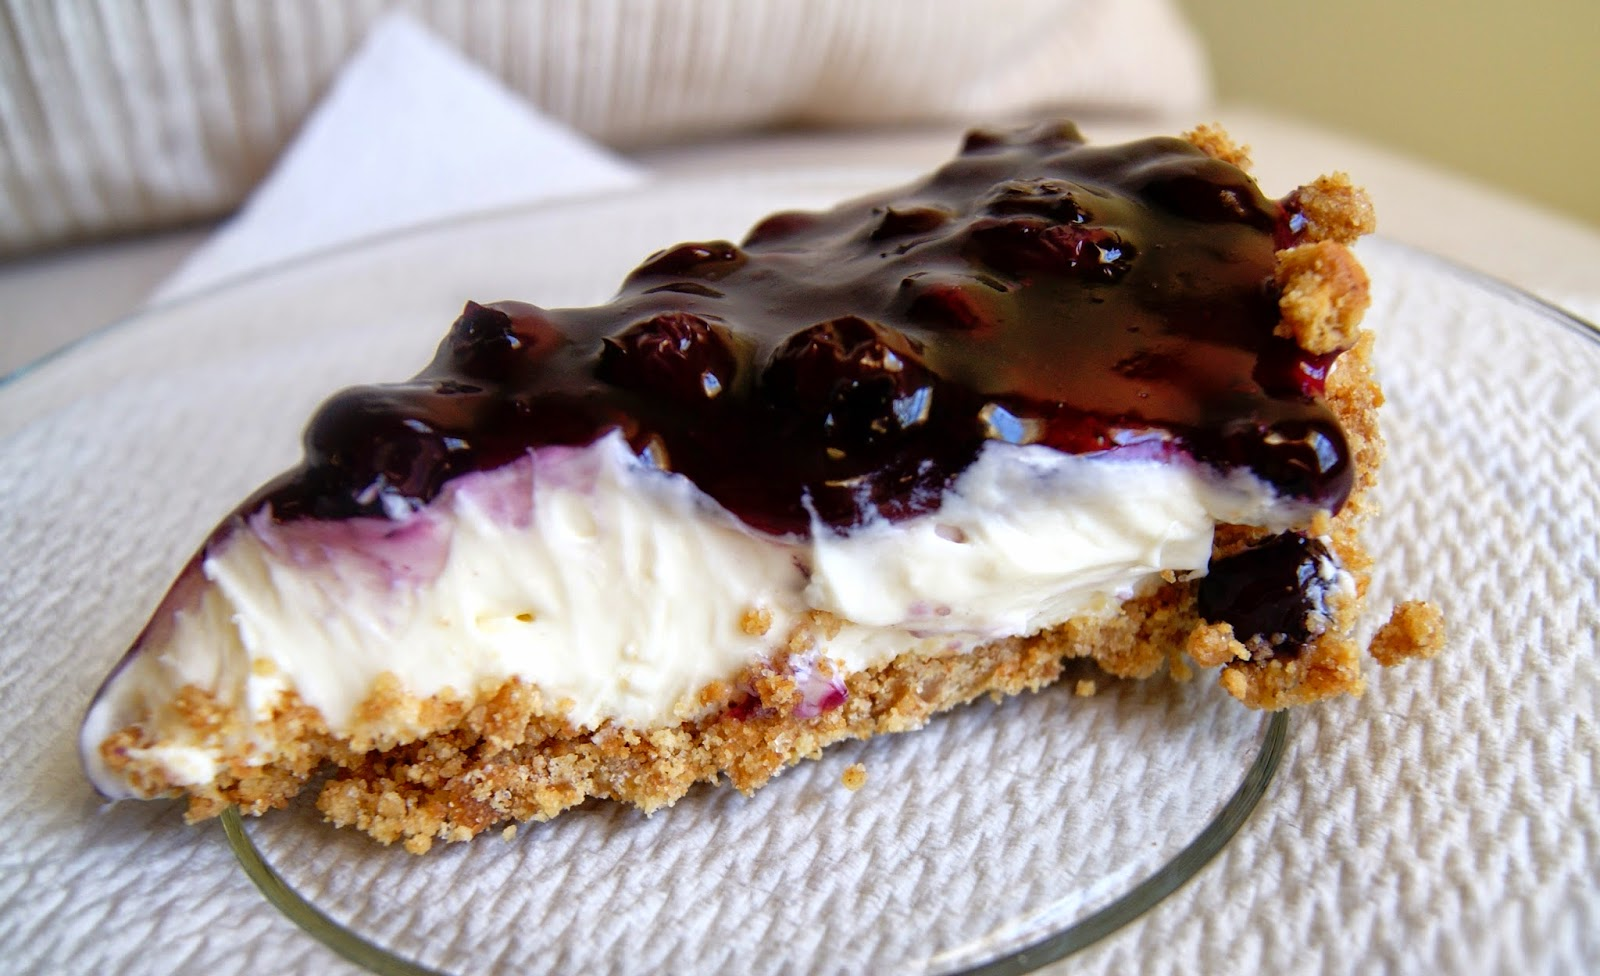 Blueberry Cream Cheese Pie with Graham Cracker Crust ~ Kari Michale